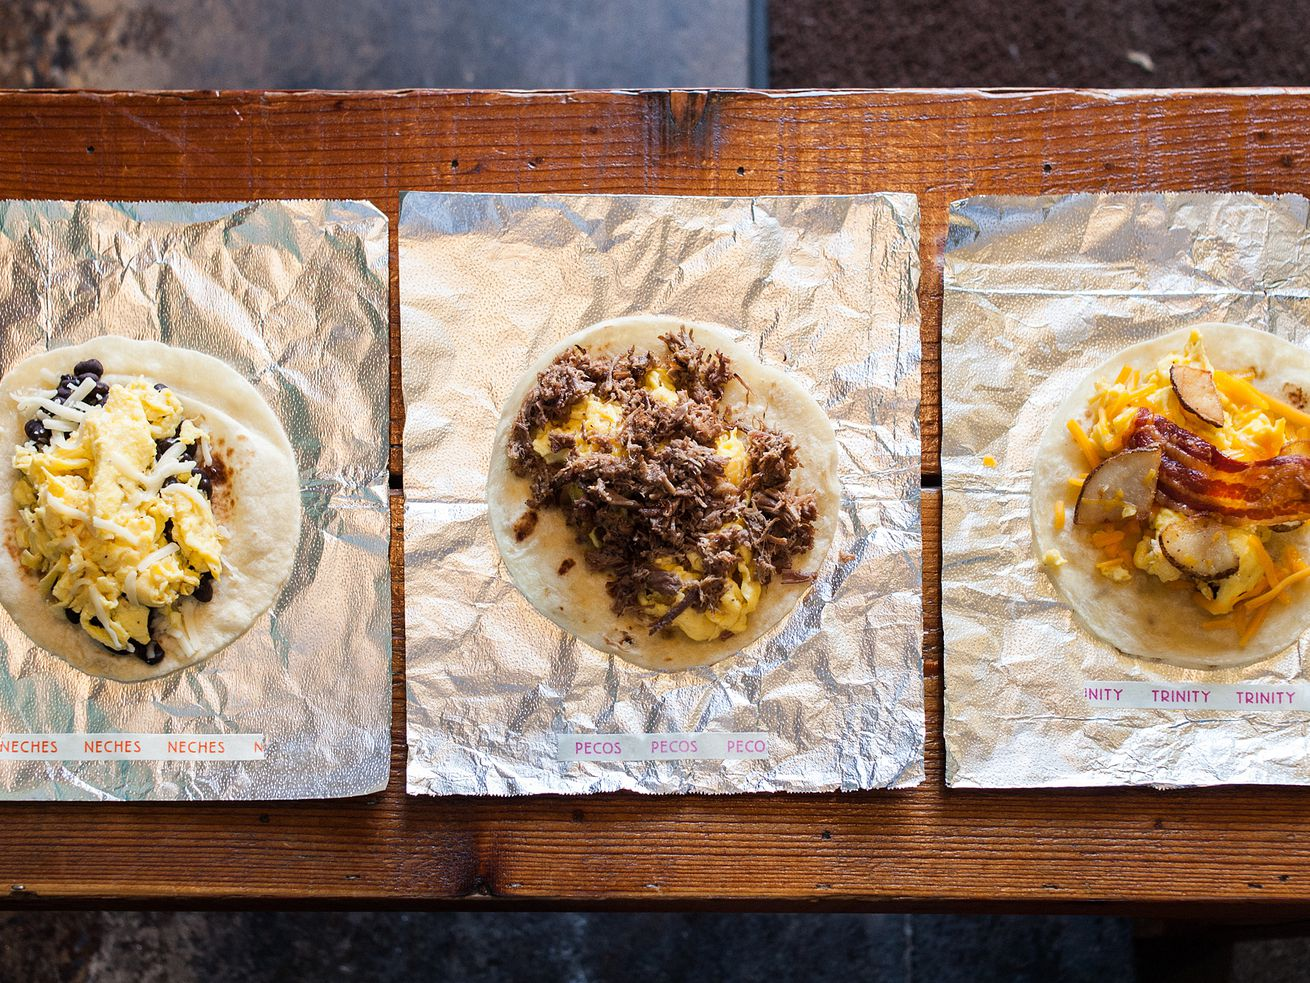 Tacos from HomeState